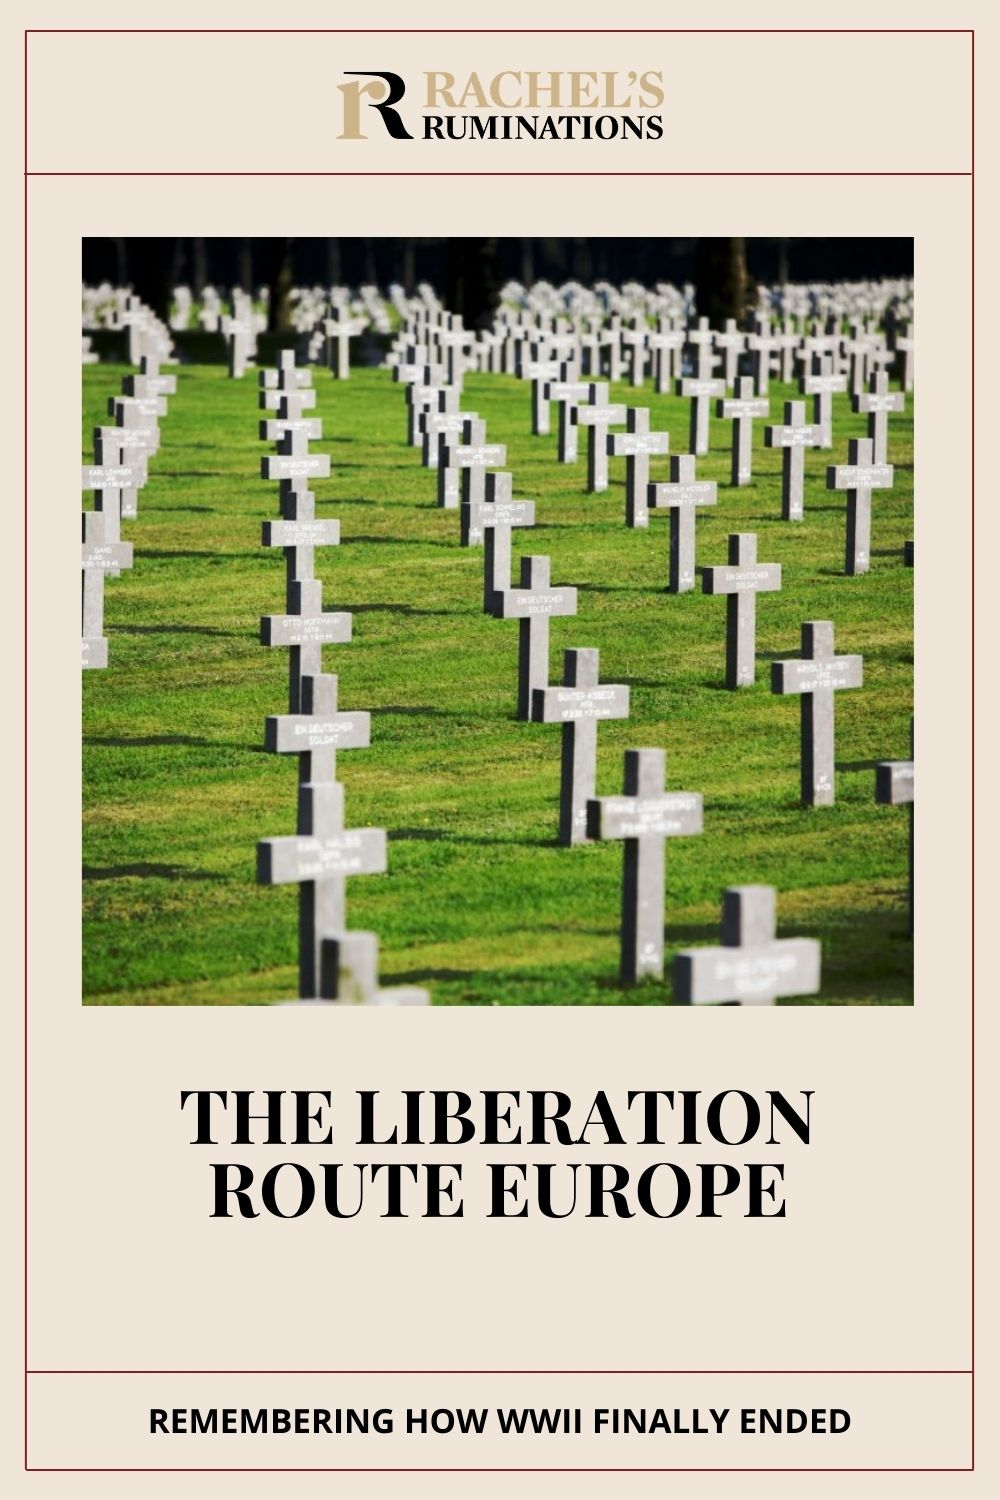 The Liberation Route Europe, its WWII battlefields and museums: it's important to stop and acknowledge the world-changing events of WWII. via @rachelsruminations